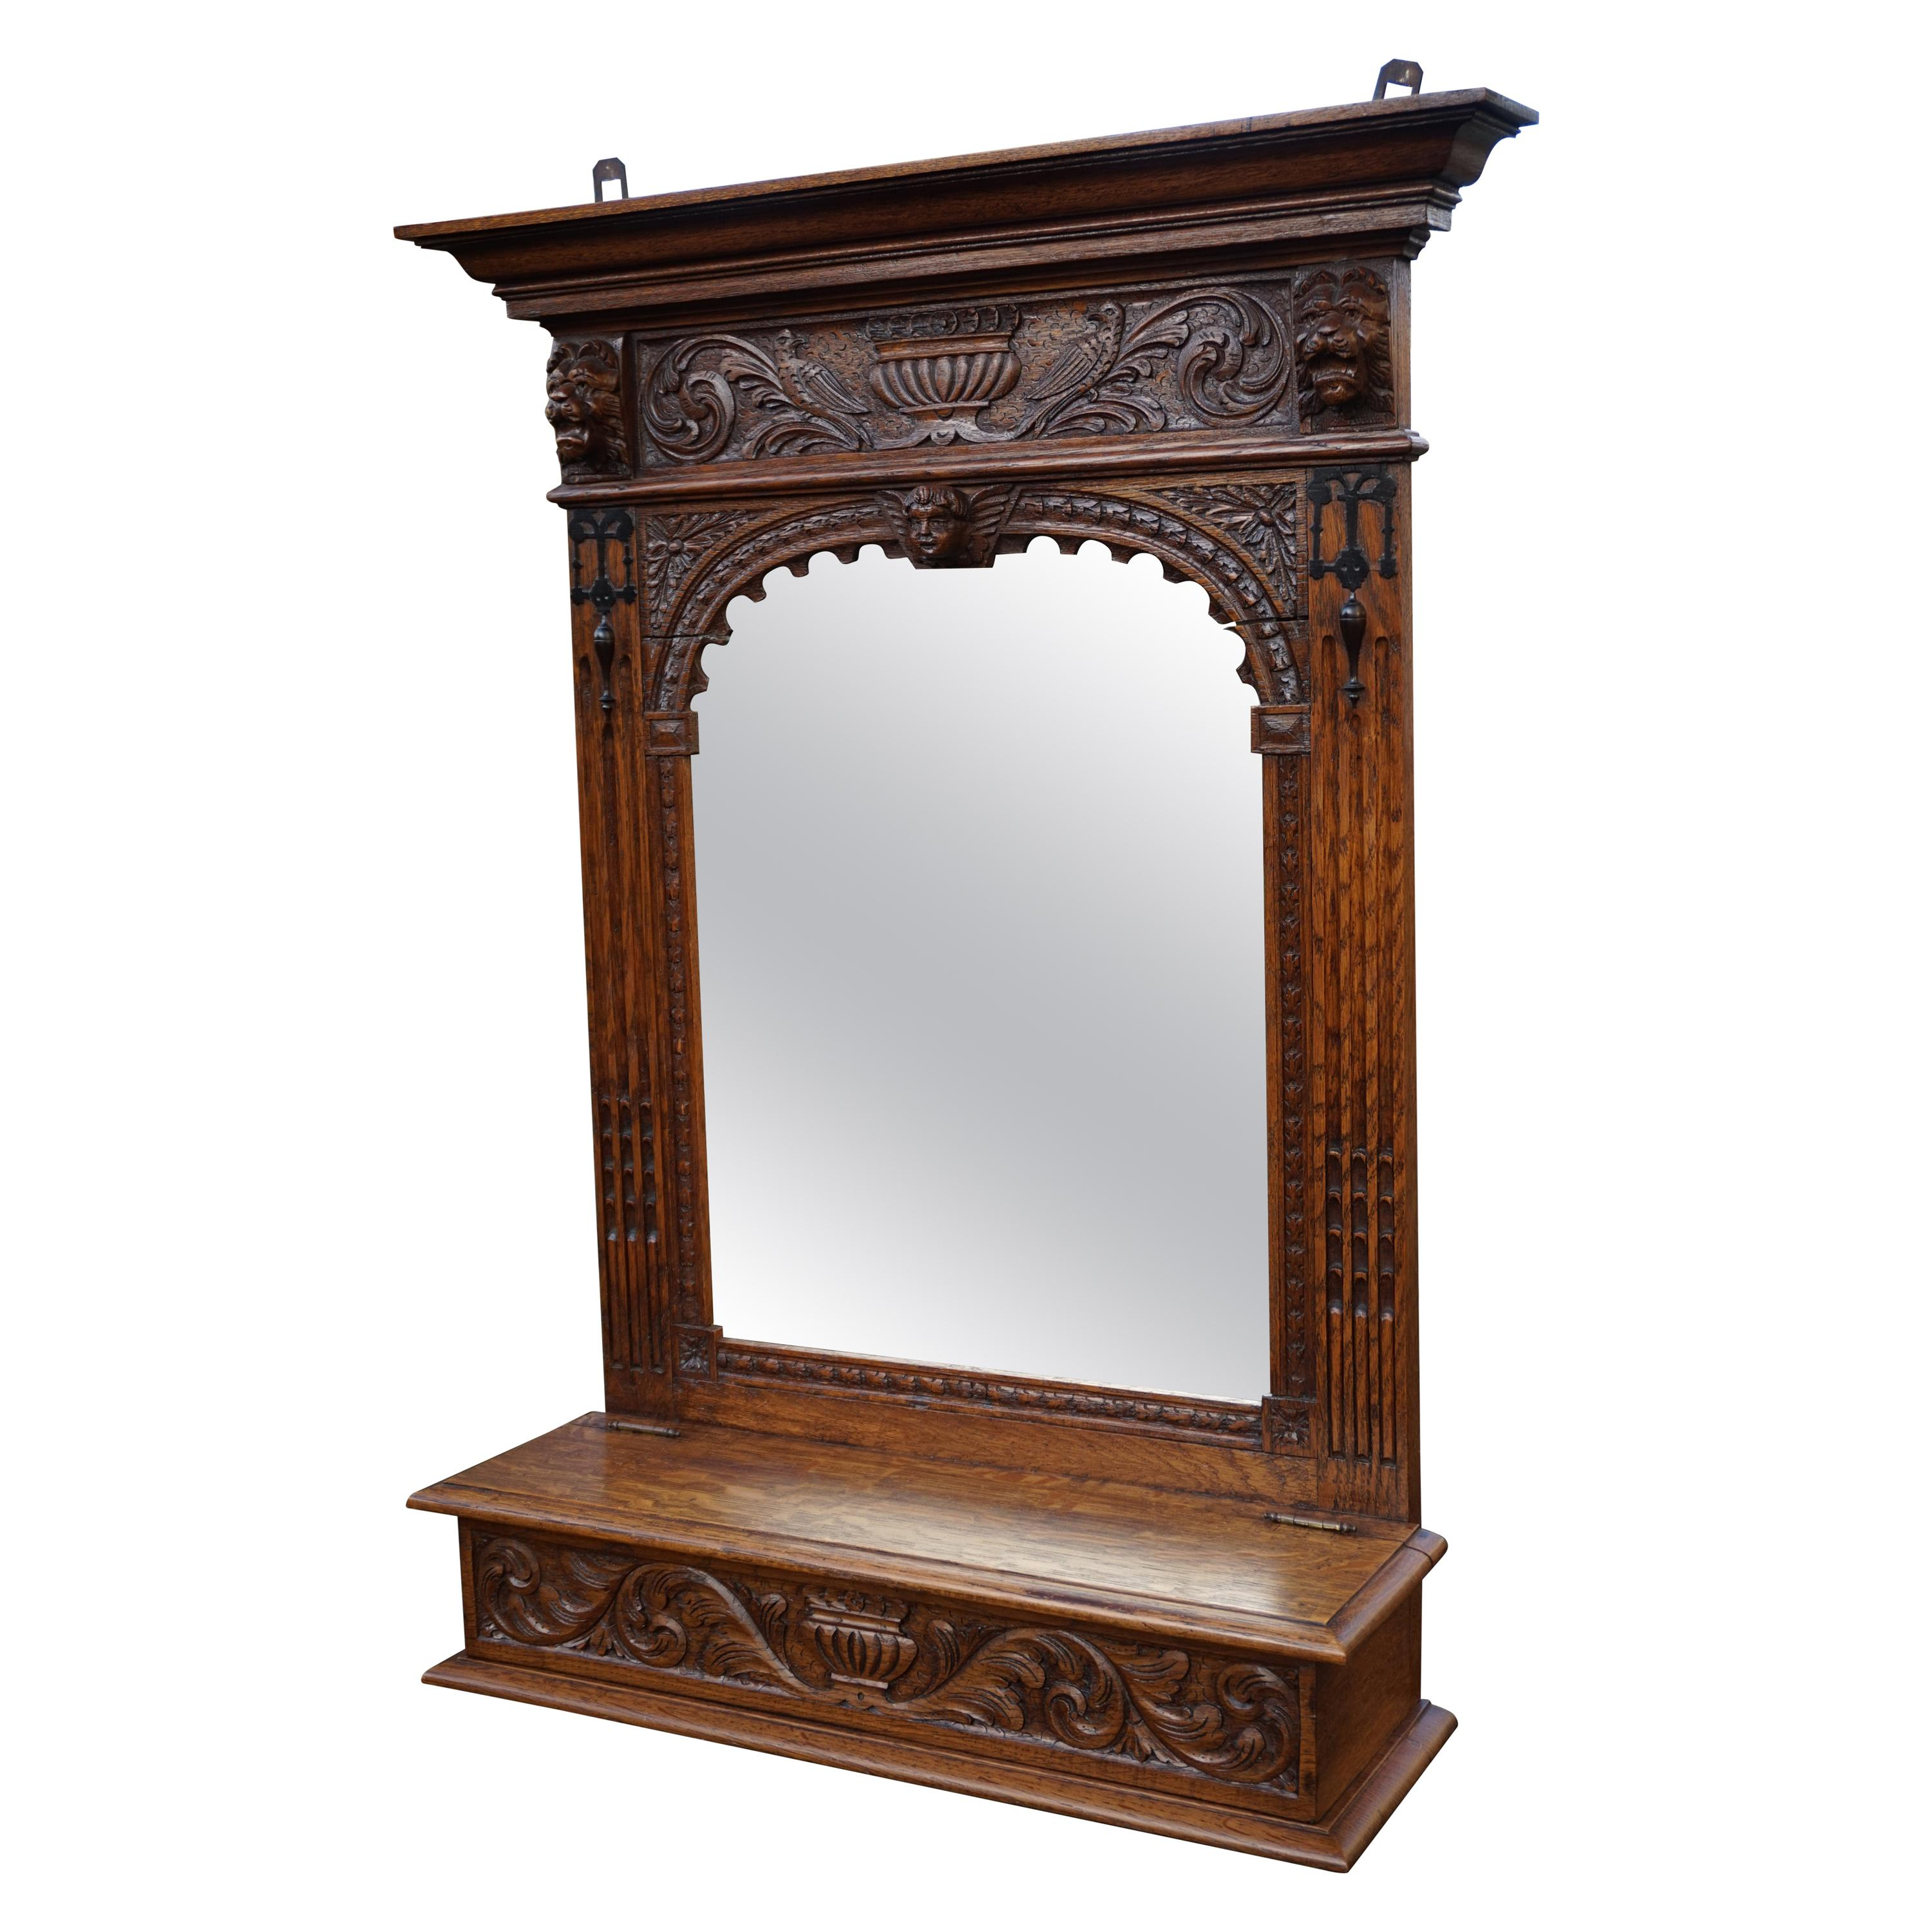 Hand Carved Renaissance Revival Wall Mirror with Lidded Gloves and Scarf Box